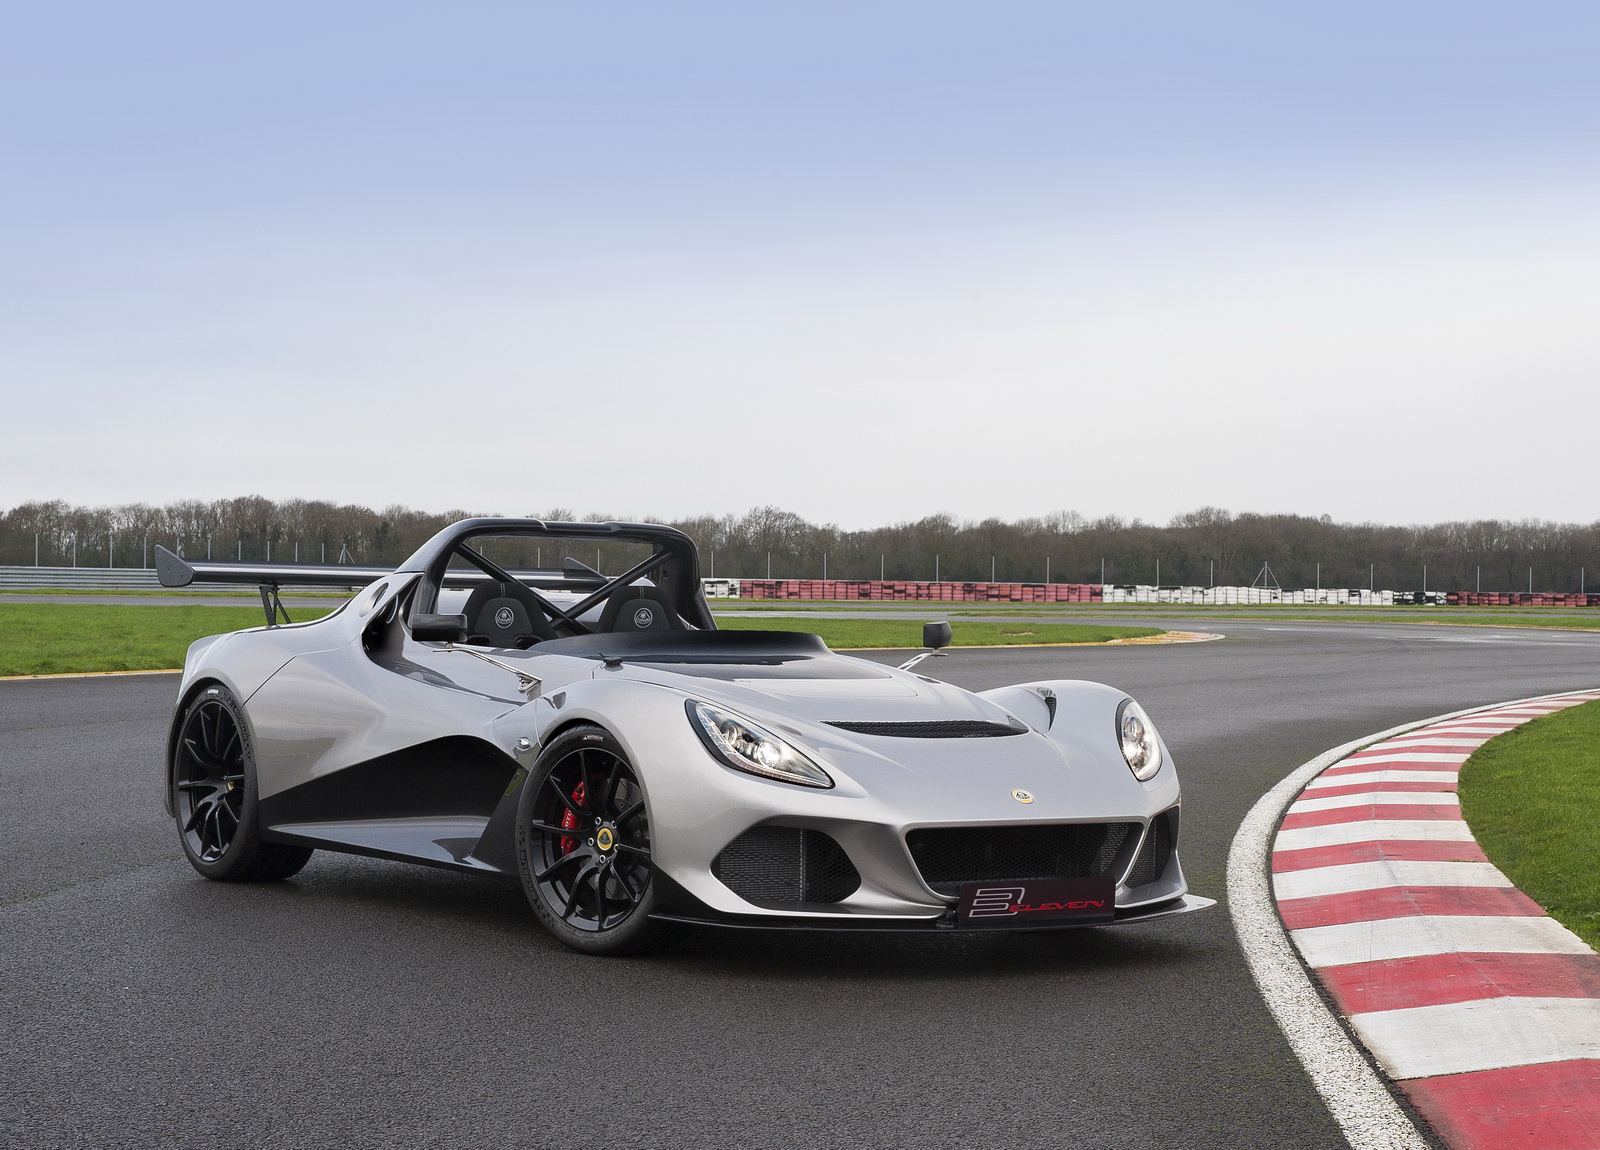 Seeing The Fastest And Most Expensive Cars Of Lotus